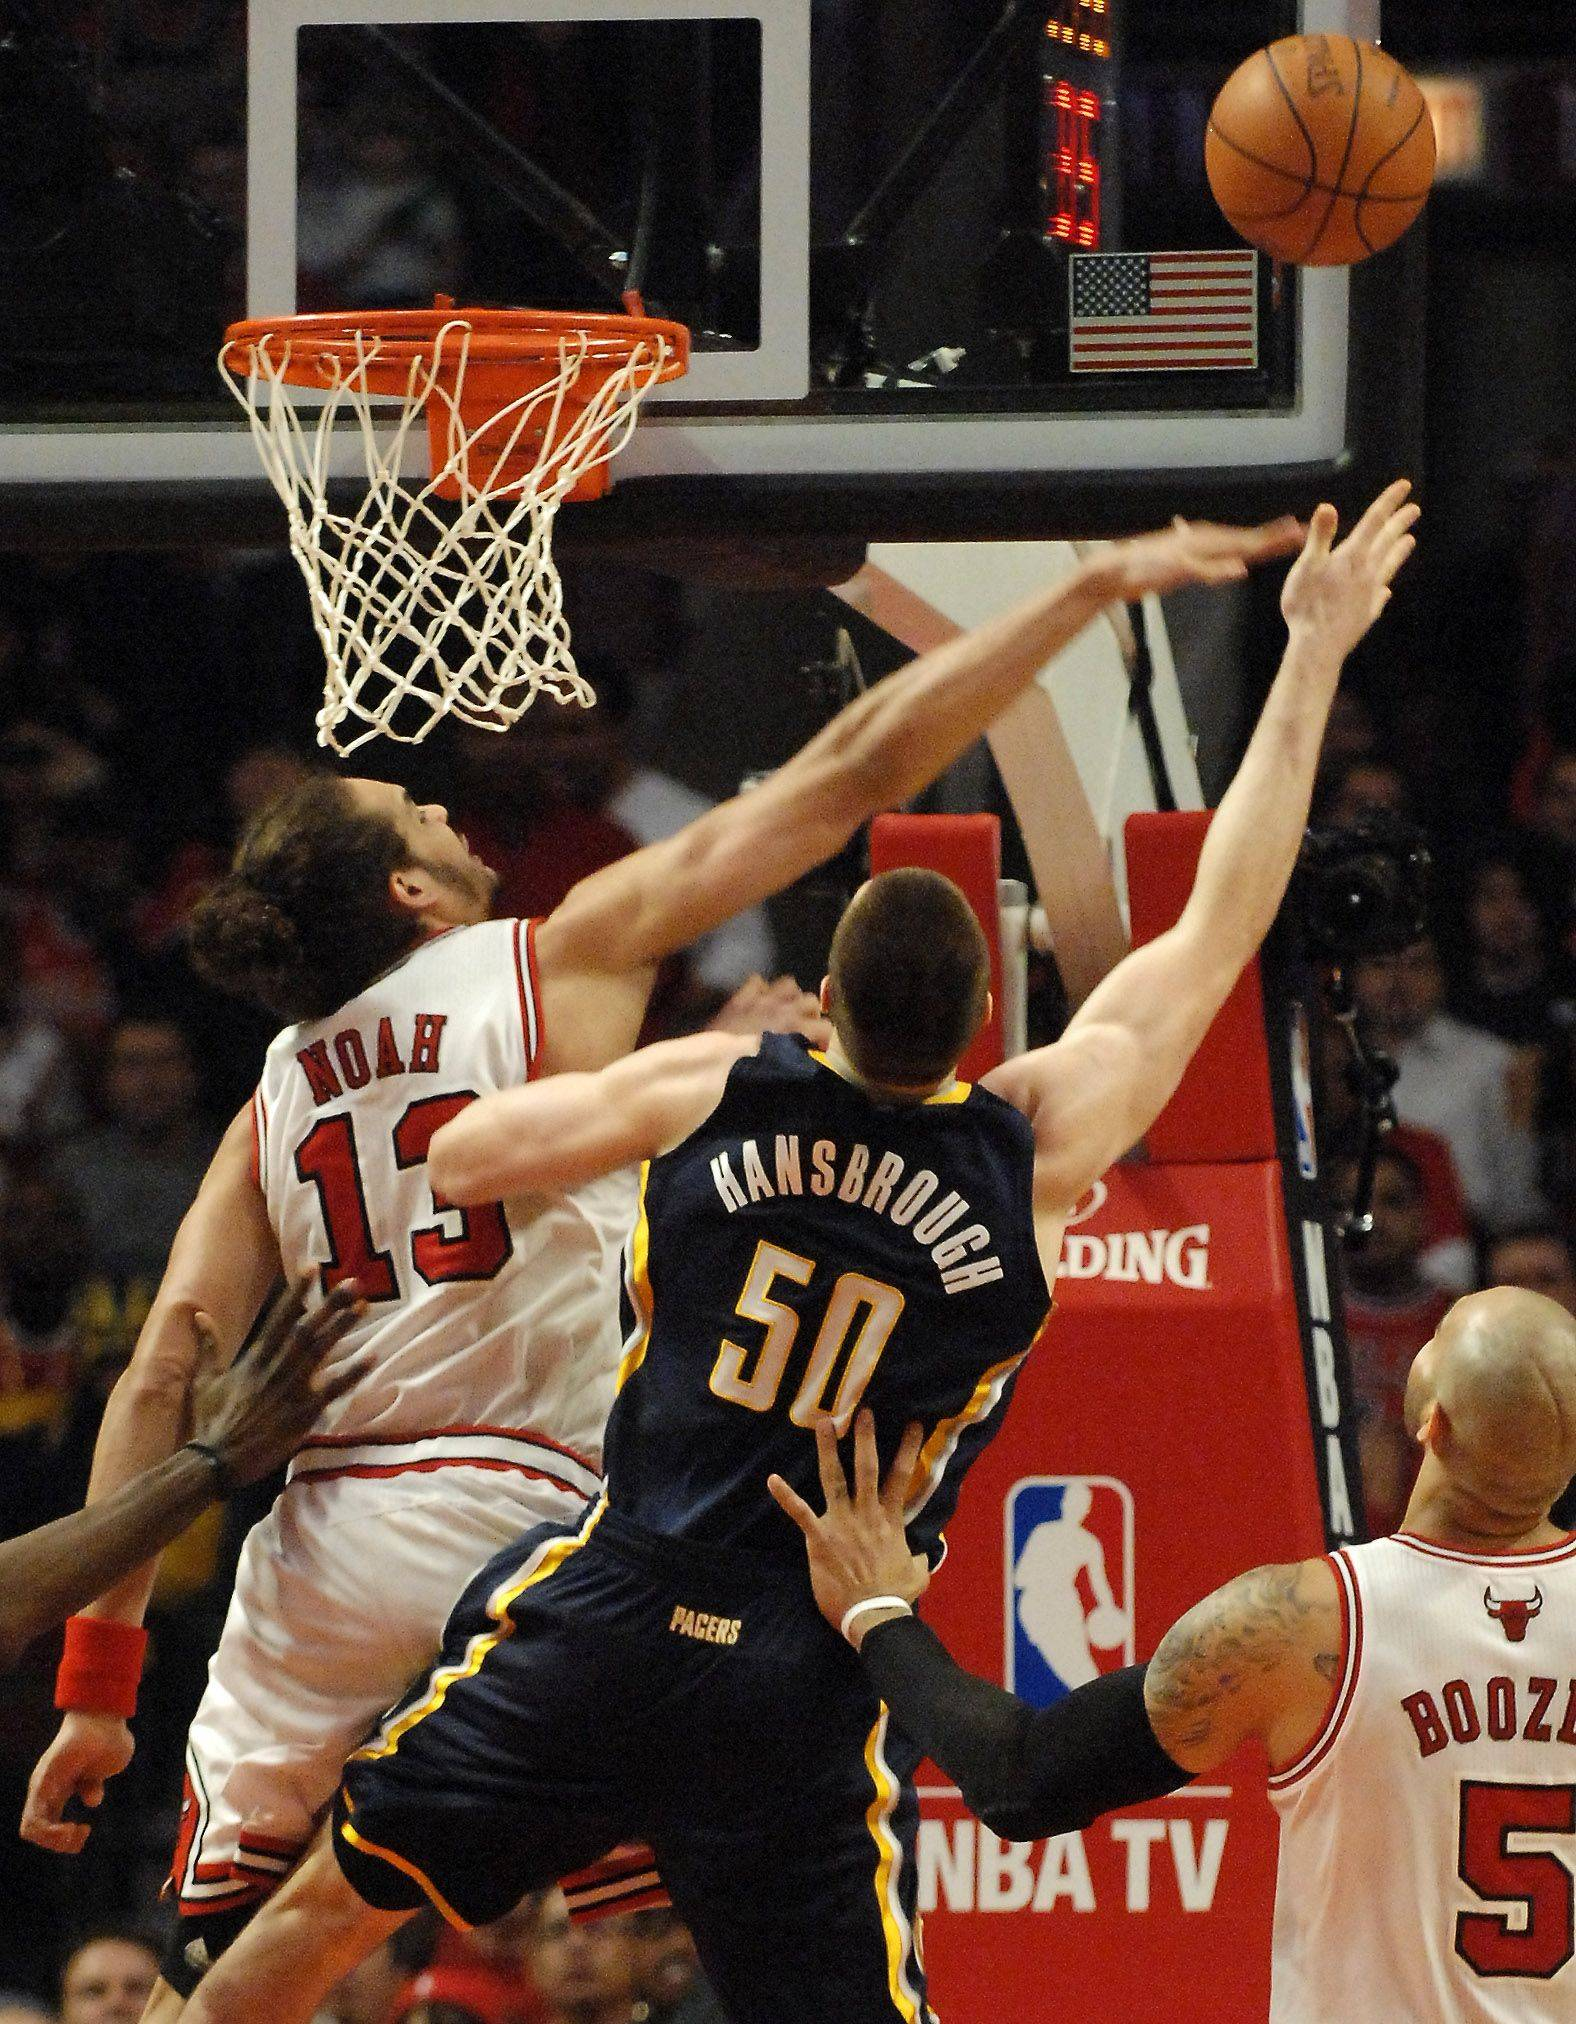 Chicago Bulls center Joakim Noah (13) blocks a shot by Indiana Pacers power forward Tyler Hansbrough (50) during Game One of the NBA Eastern Conference Quarterfinals Saturday at the United Center in Chicago.